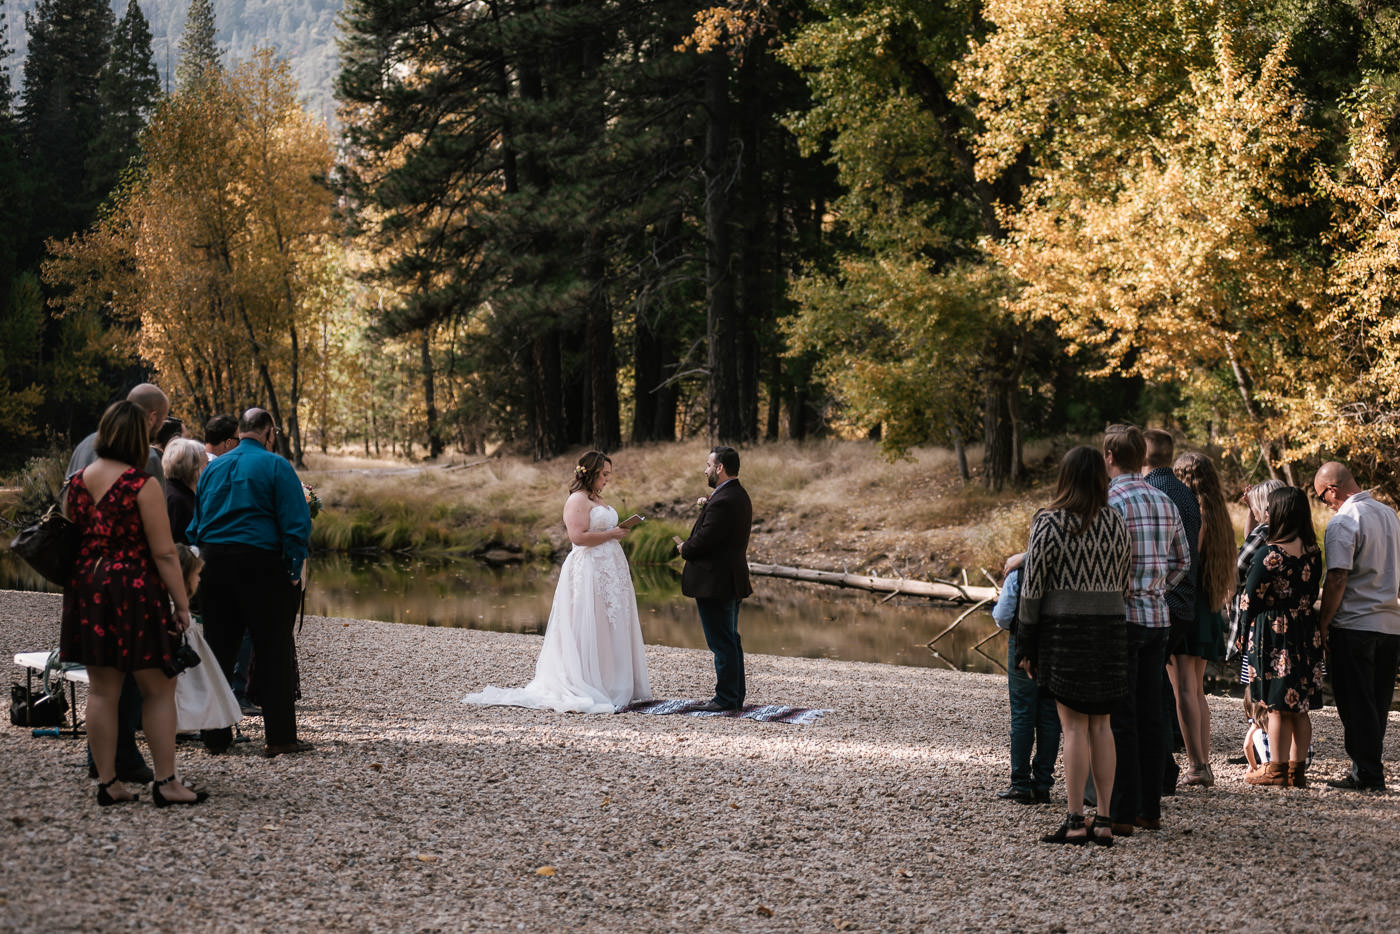 cathedral-beach-elopement-ceremony-yosemite-8.jpg